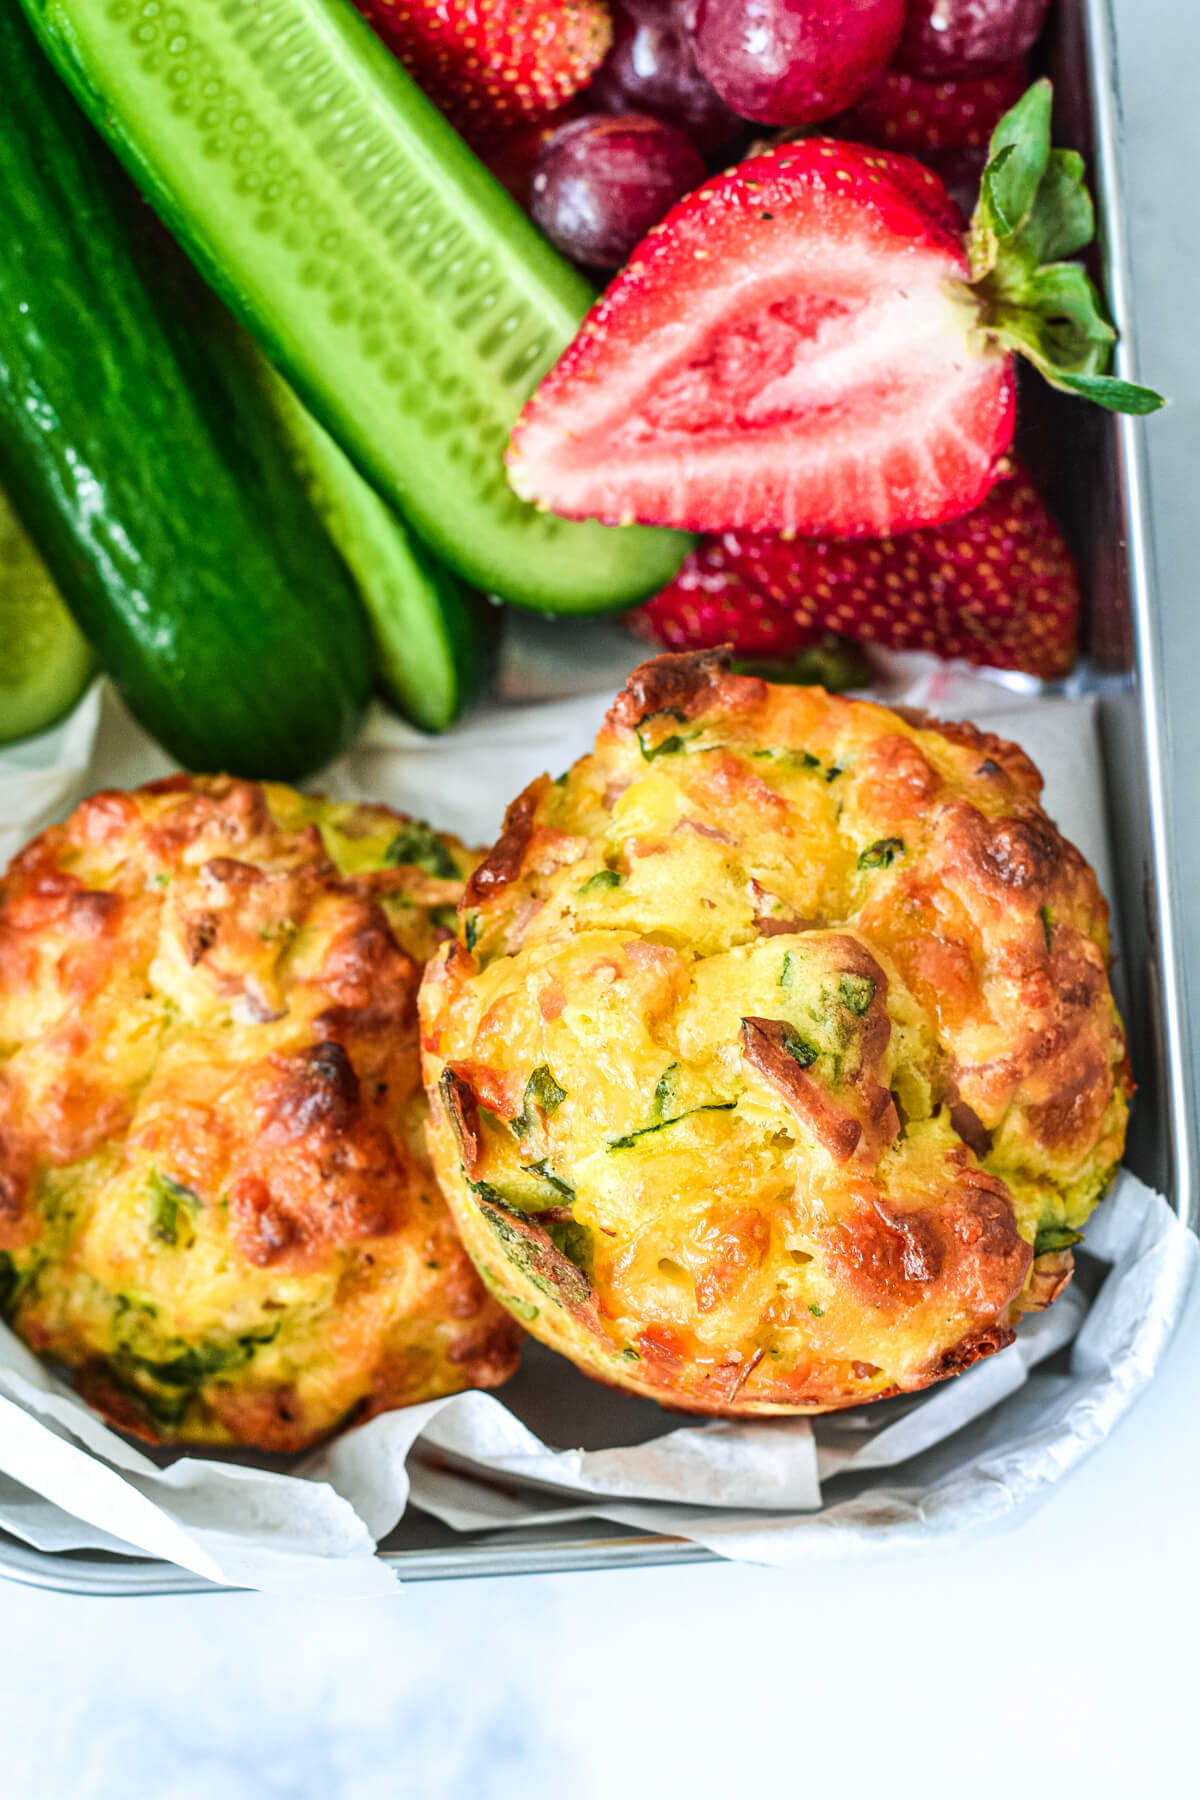 Savoury Bacon and Vegetable Muffin